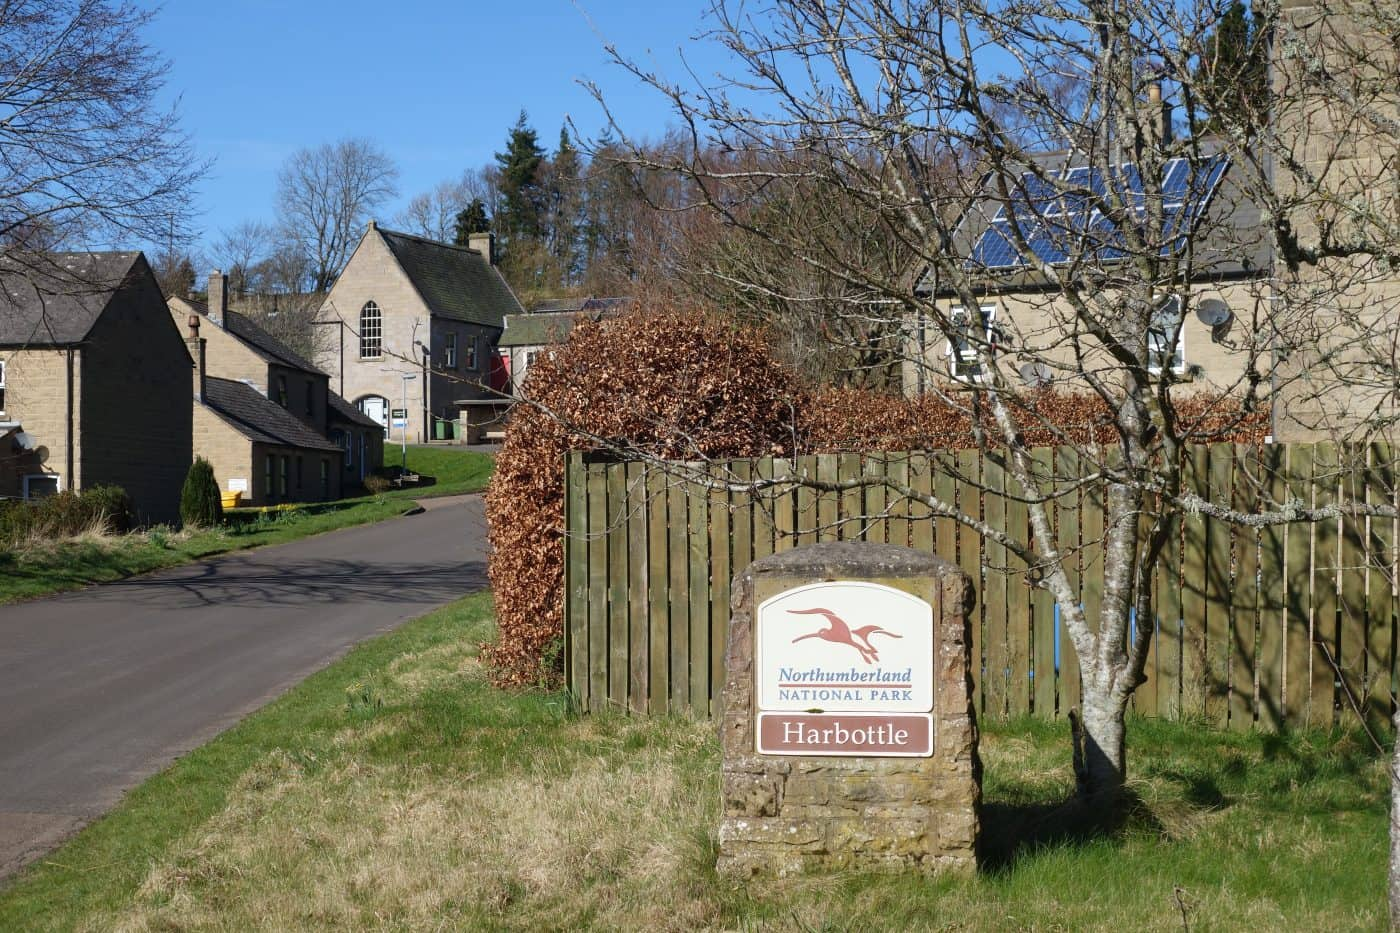 Harbottle village Northumberland - Karen's Kottages holiday cottage